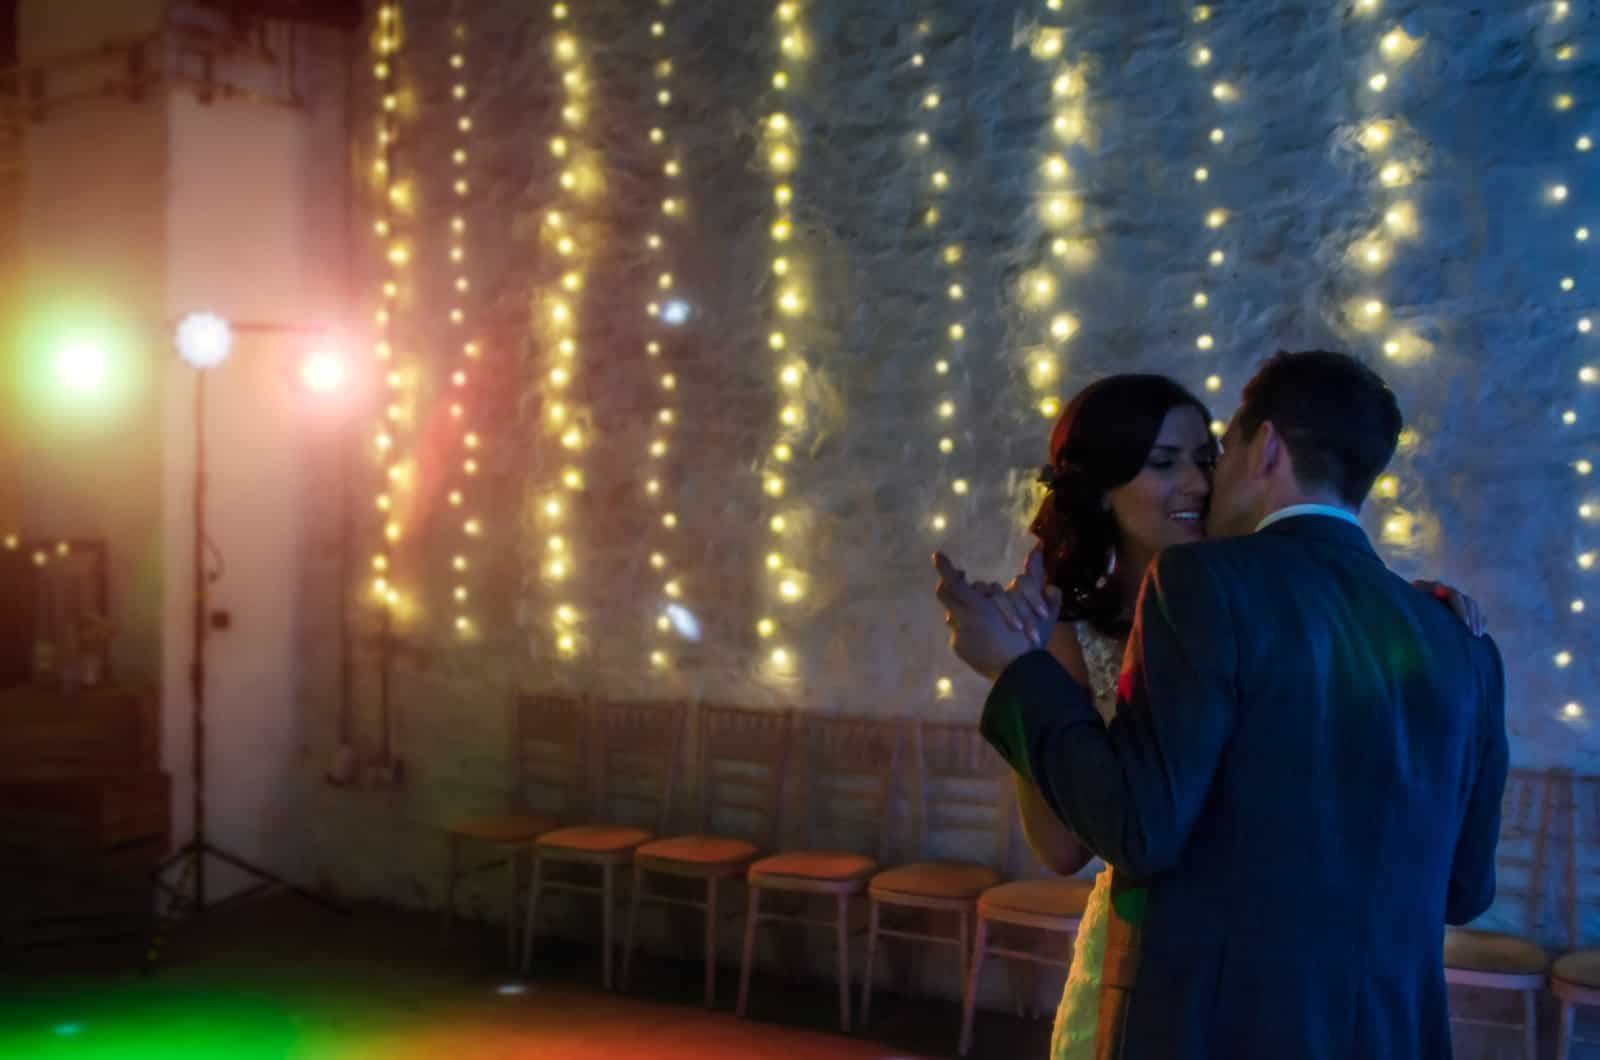 Groom kisses bride during first dance